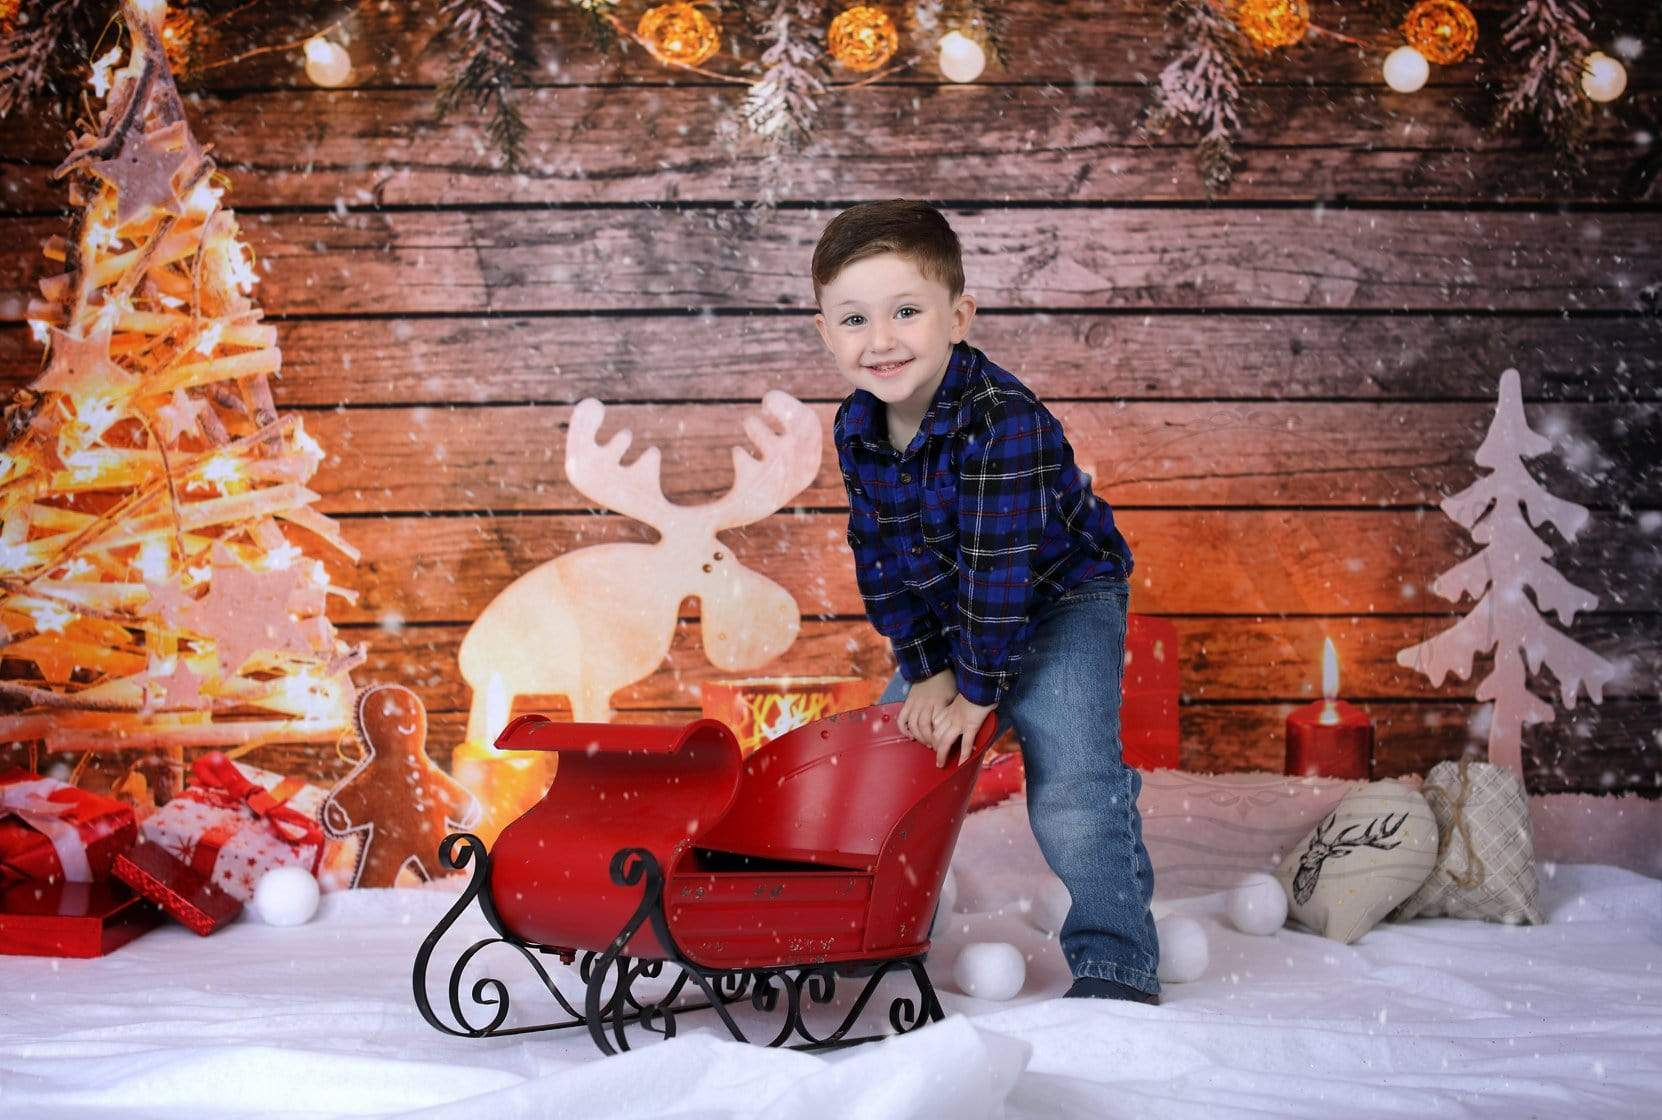 Load image into Gallery viewer, Kate Christmas Photo Backdrop Snow Wooden Light Wall